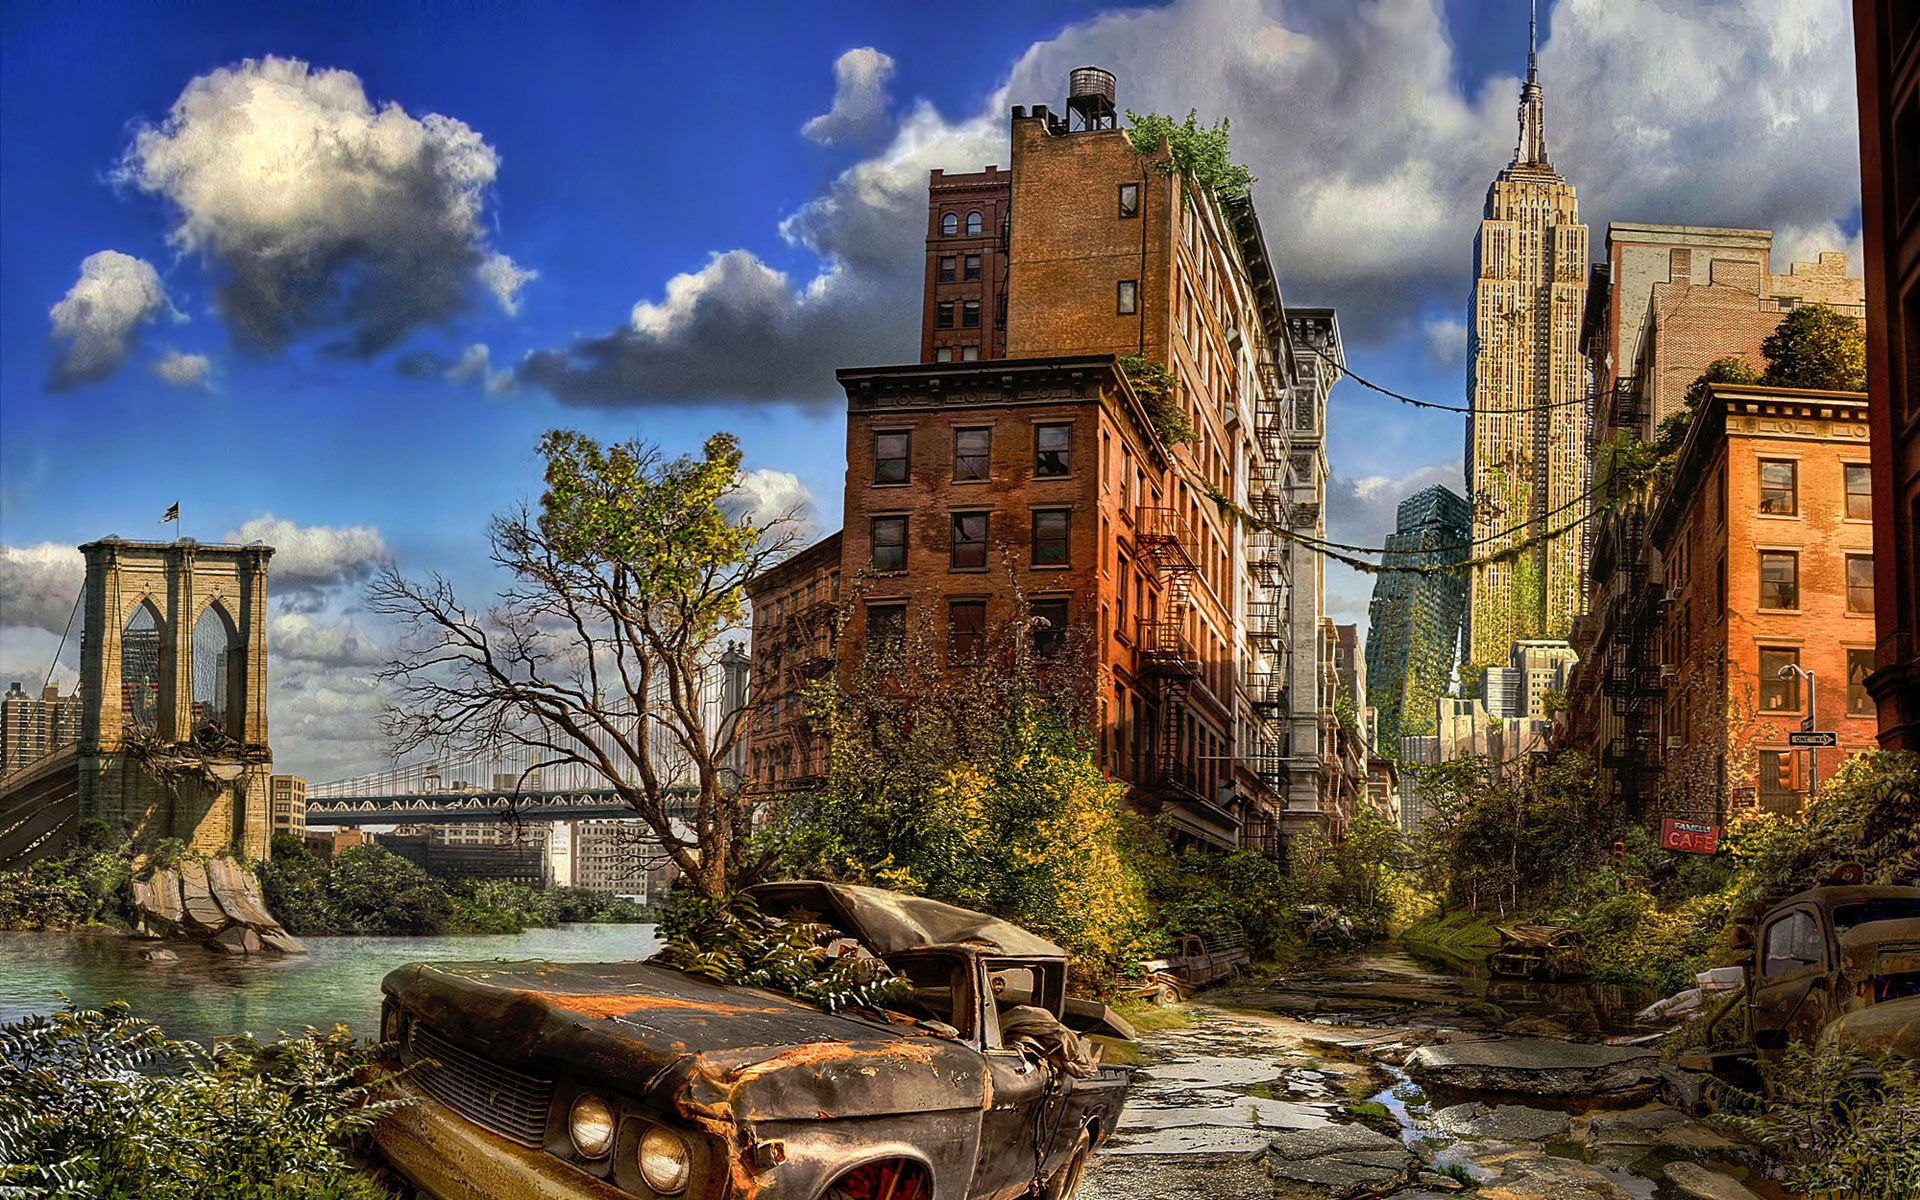 Really Nice Photochop Of A Post Apocalyptic New York I Like The Use Of Hdr Techniques To Give It A Post Apocalyptic City Post Apocalyptic Art Post Apocalyptic